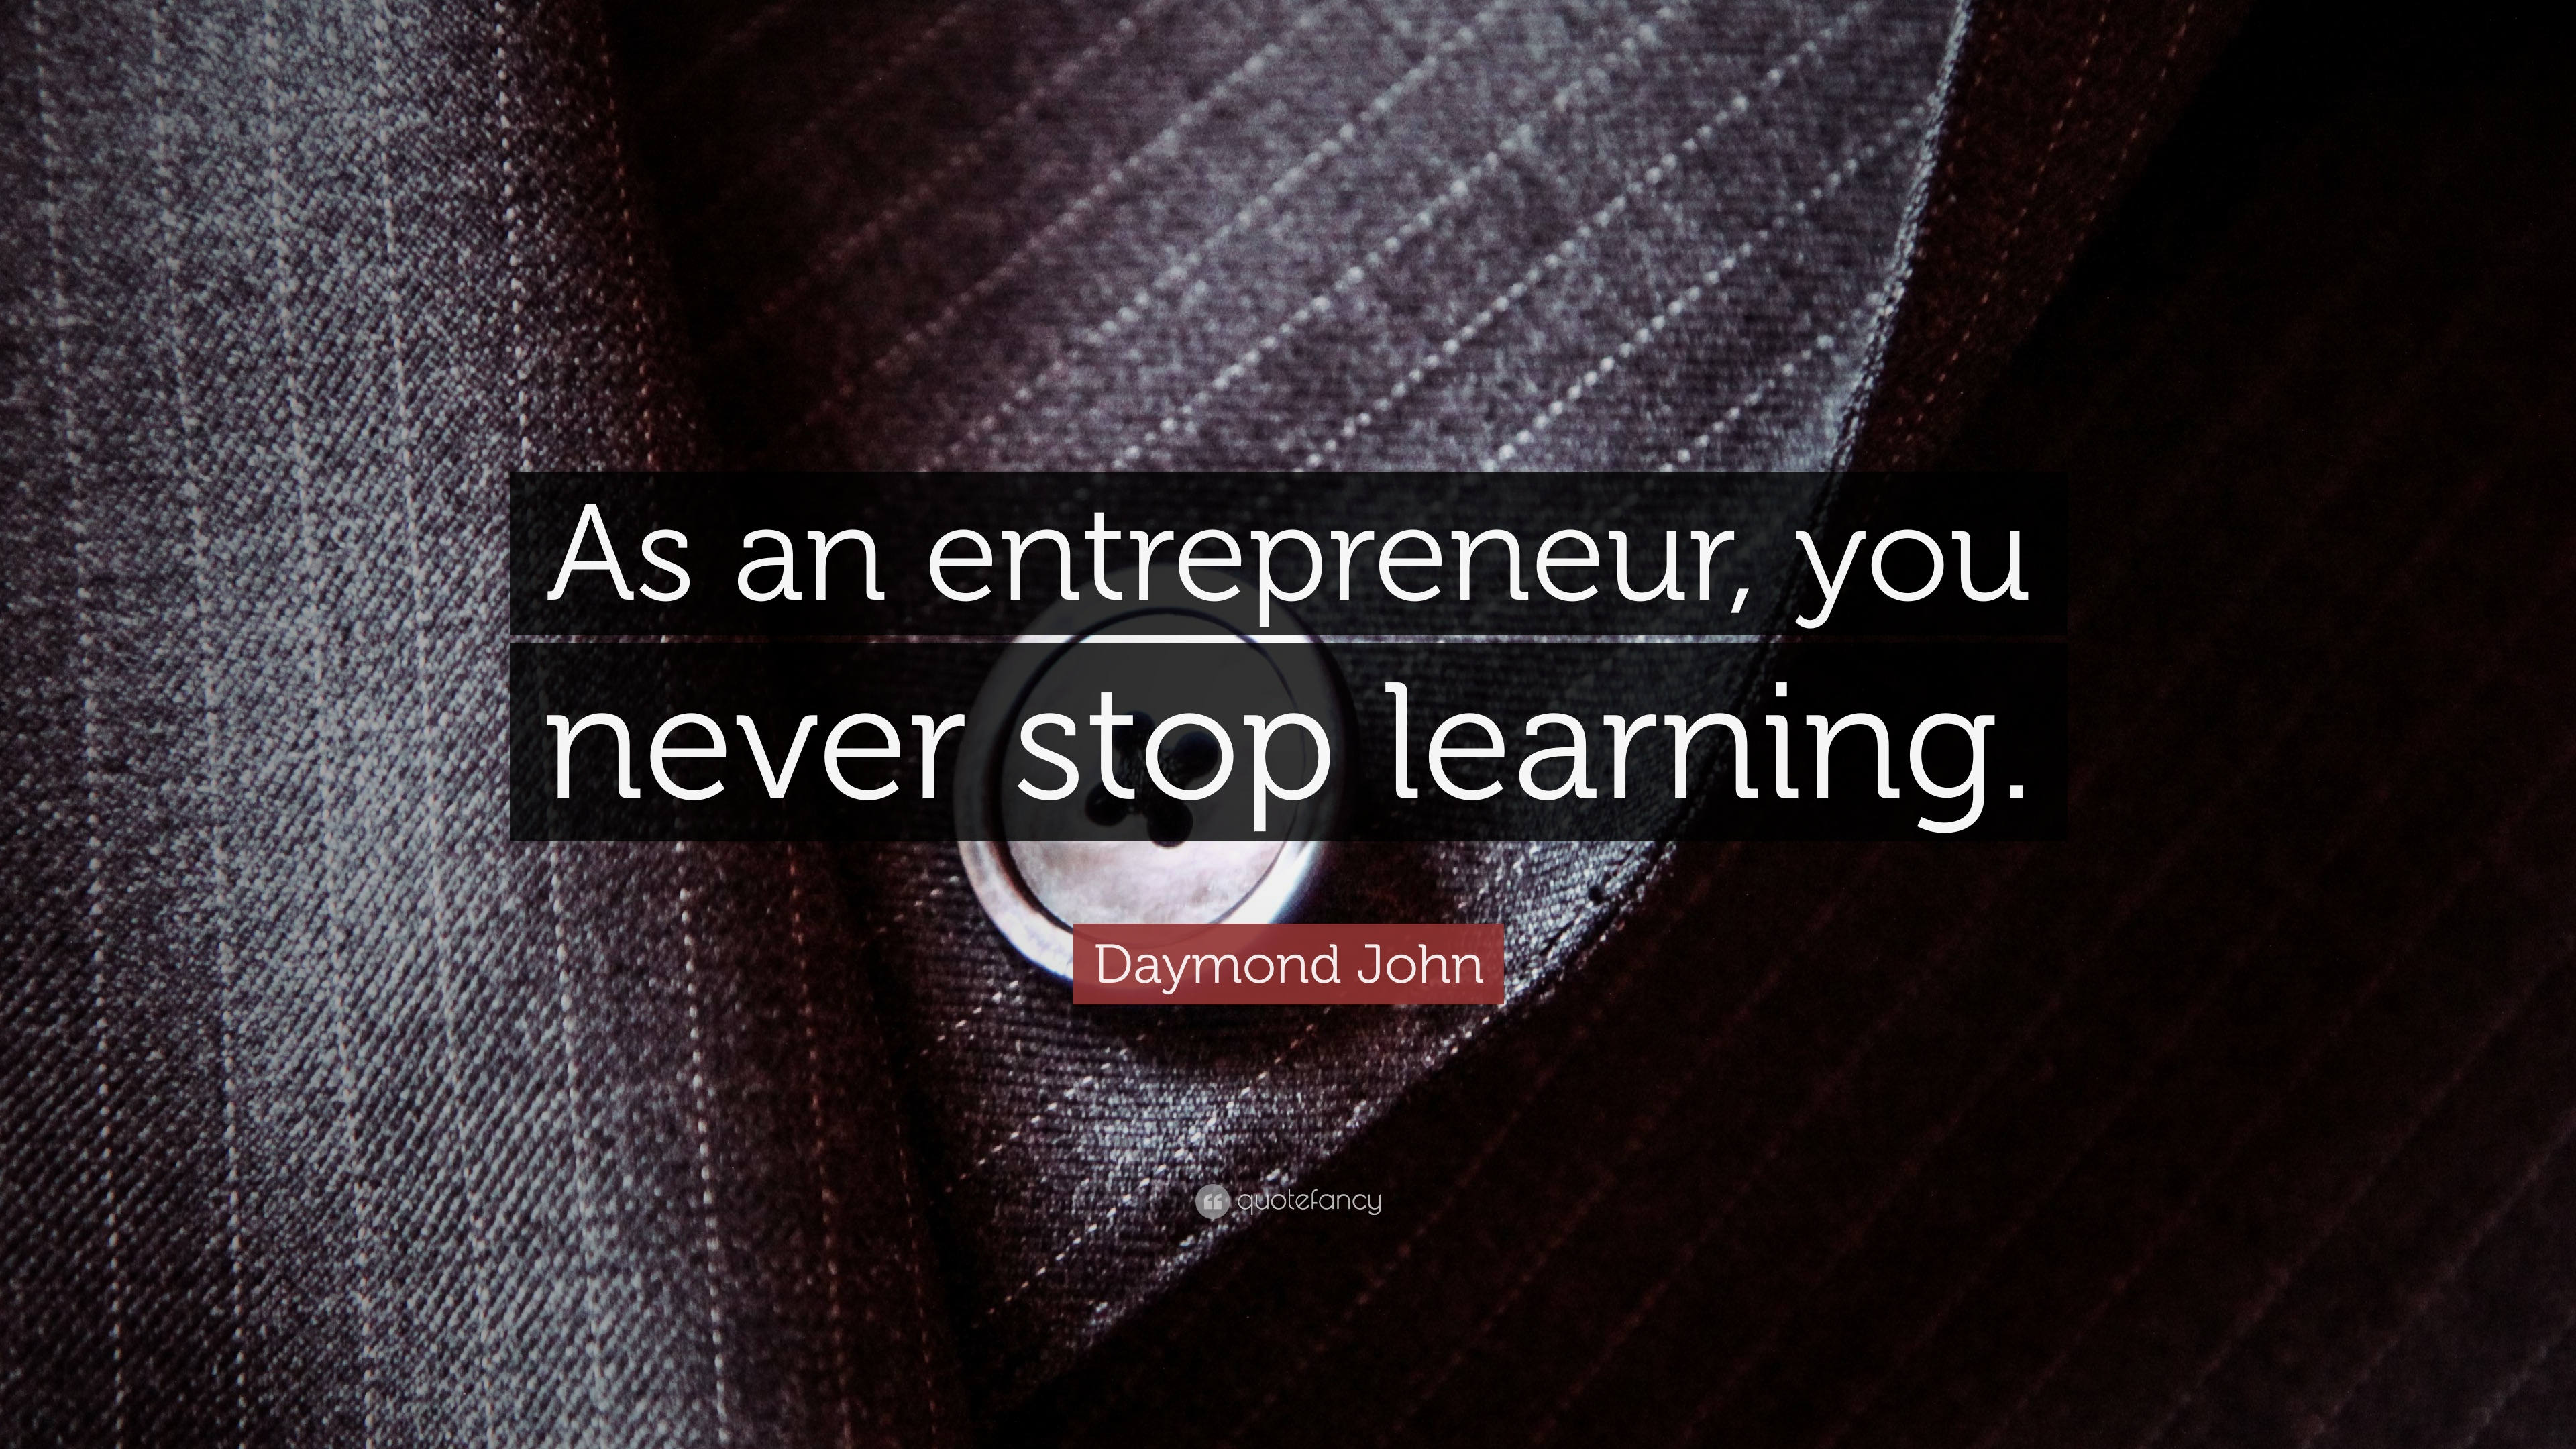 Daymond John Quote: U201cAs An Entrepreneur, You Never Stop Learning.u201d